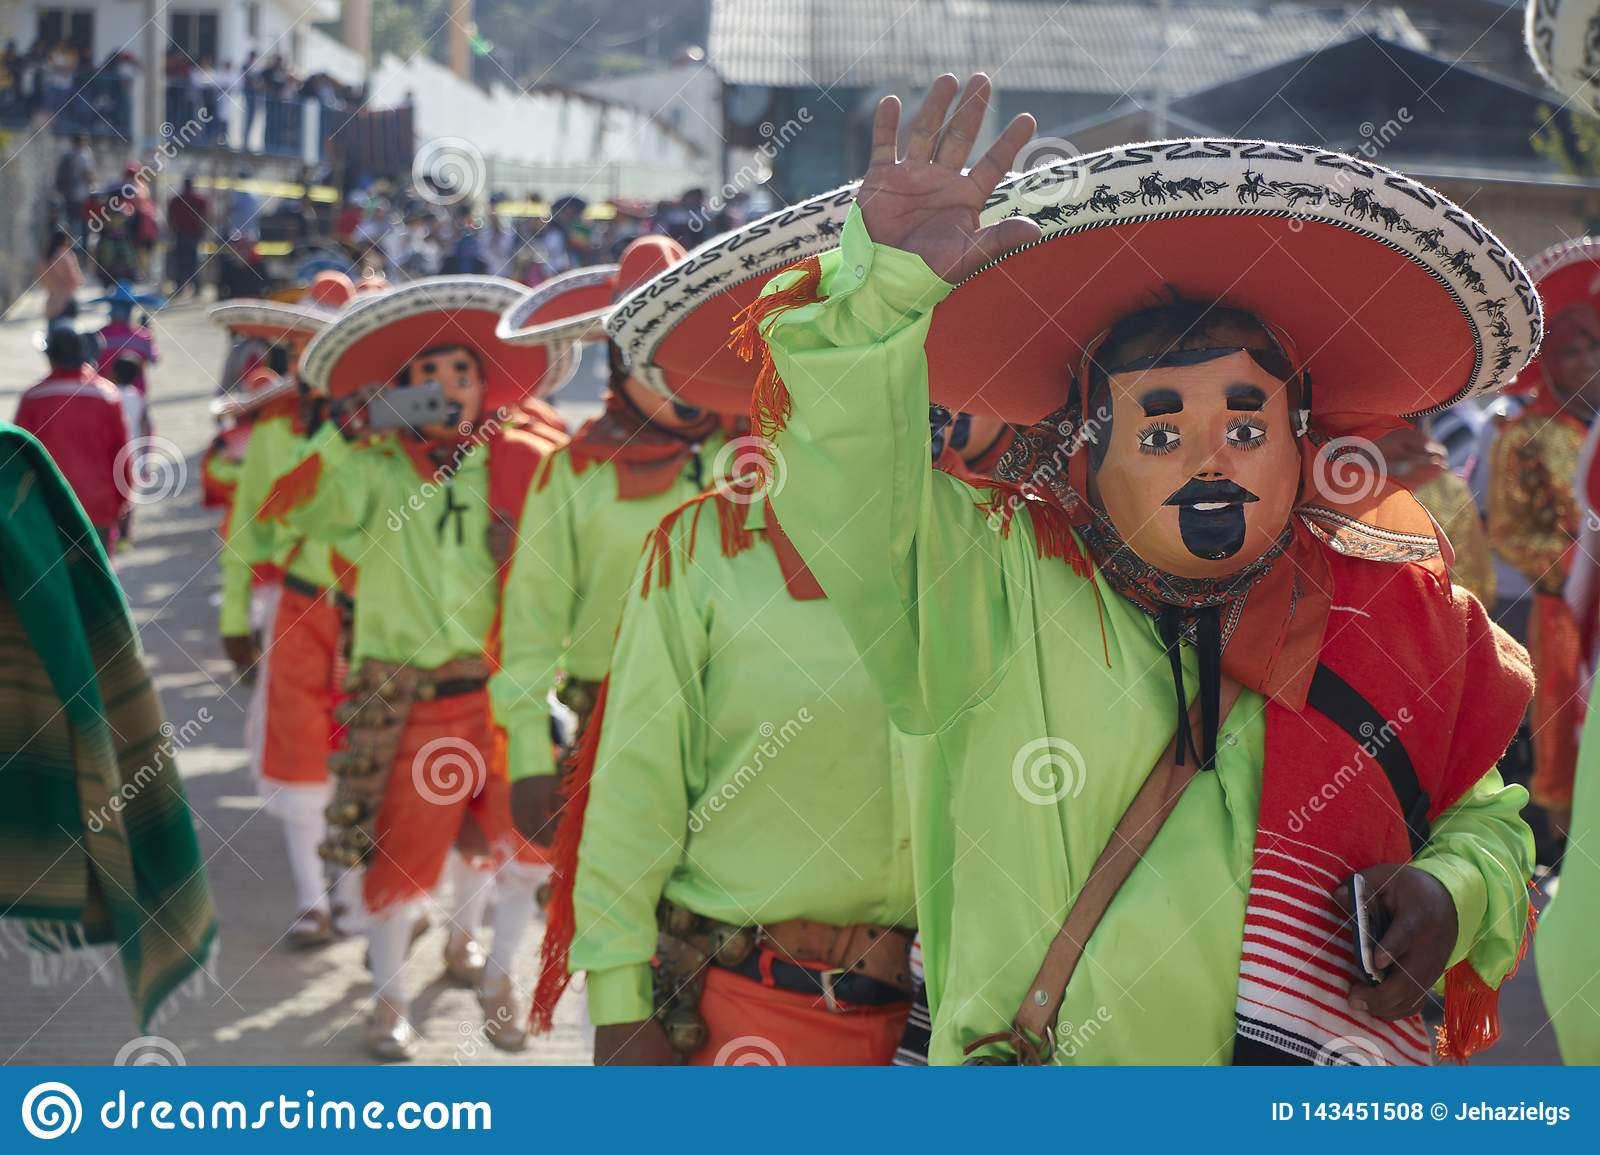 People greeting, using masks, disguised as mariachi with green shirts and orange hats